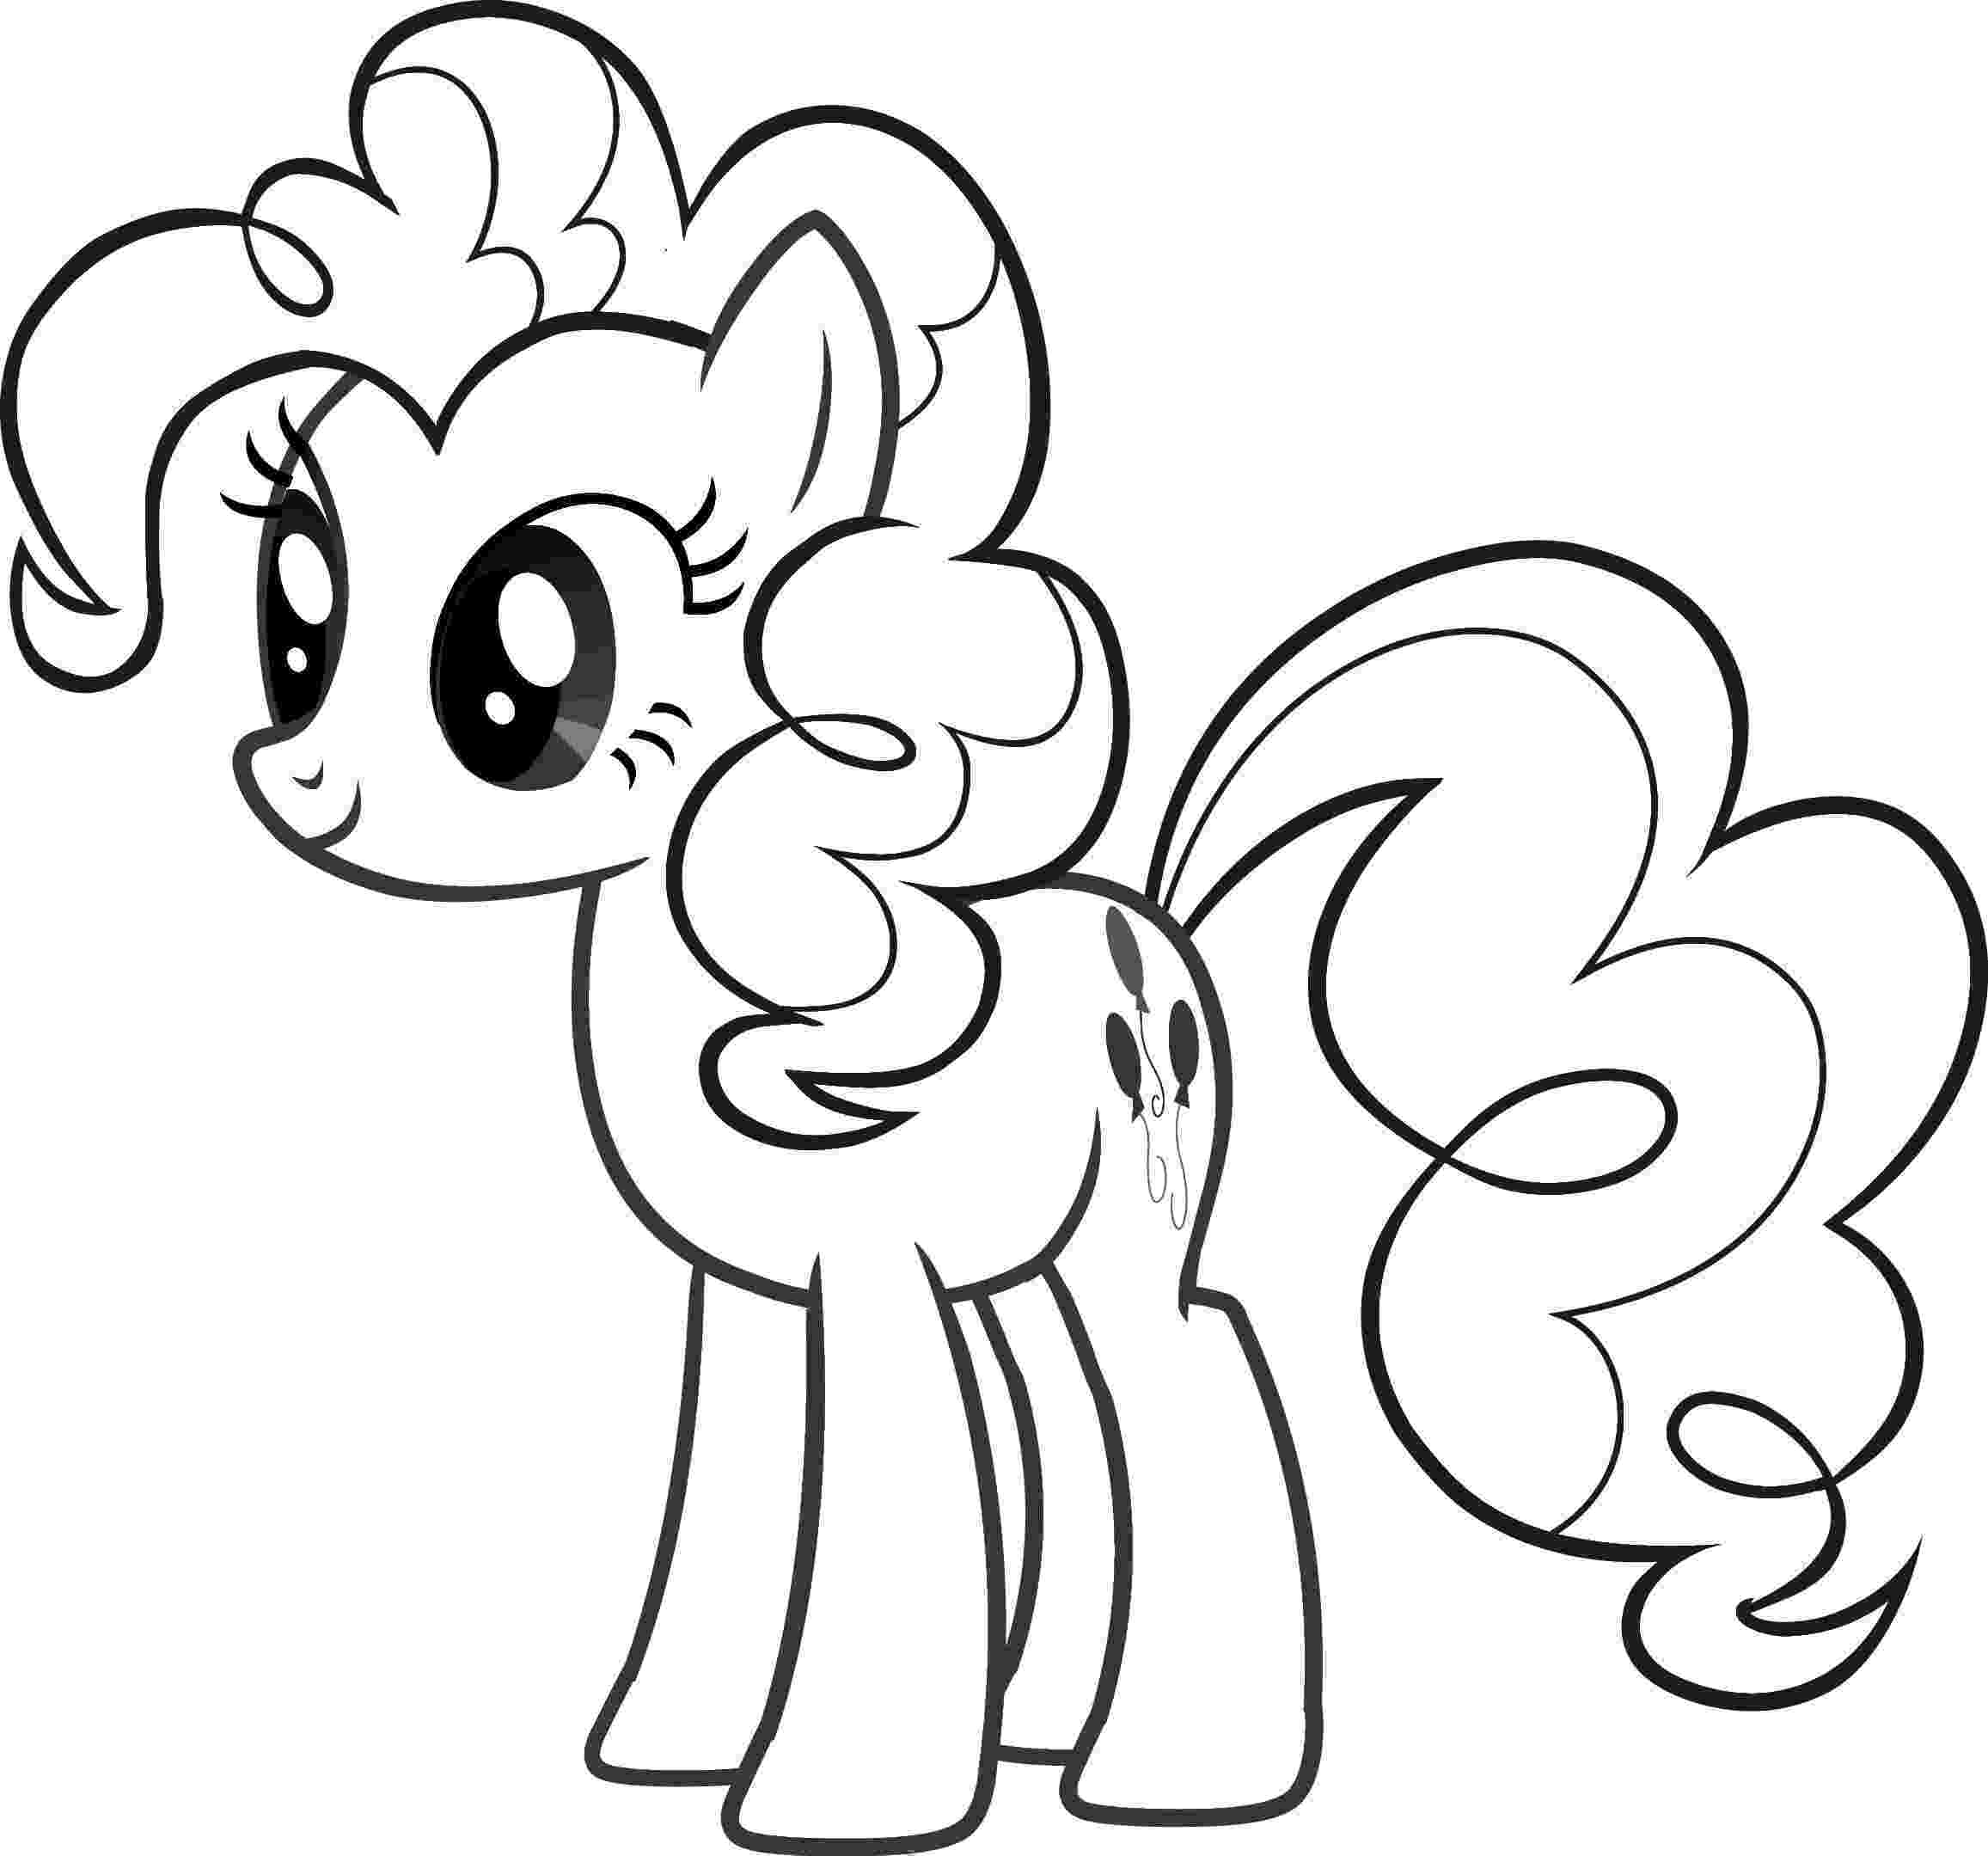 my little pony coloring pages friendship is magic my little pony coloring pages coloring pages for kids magic little friendship is coloring pages my pony